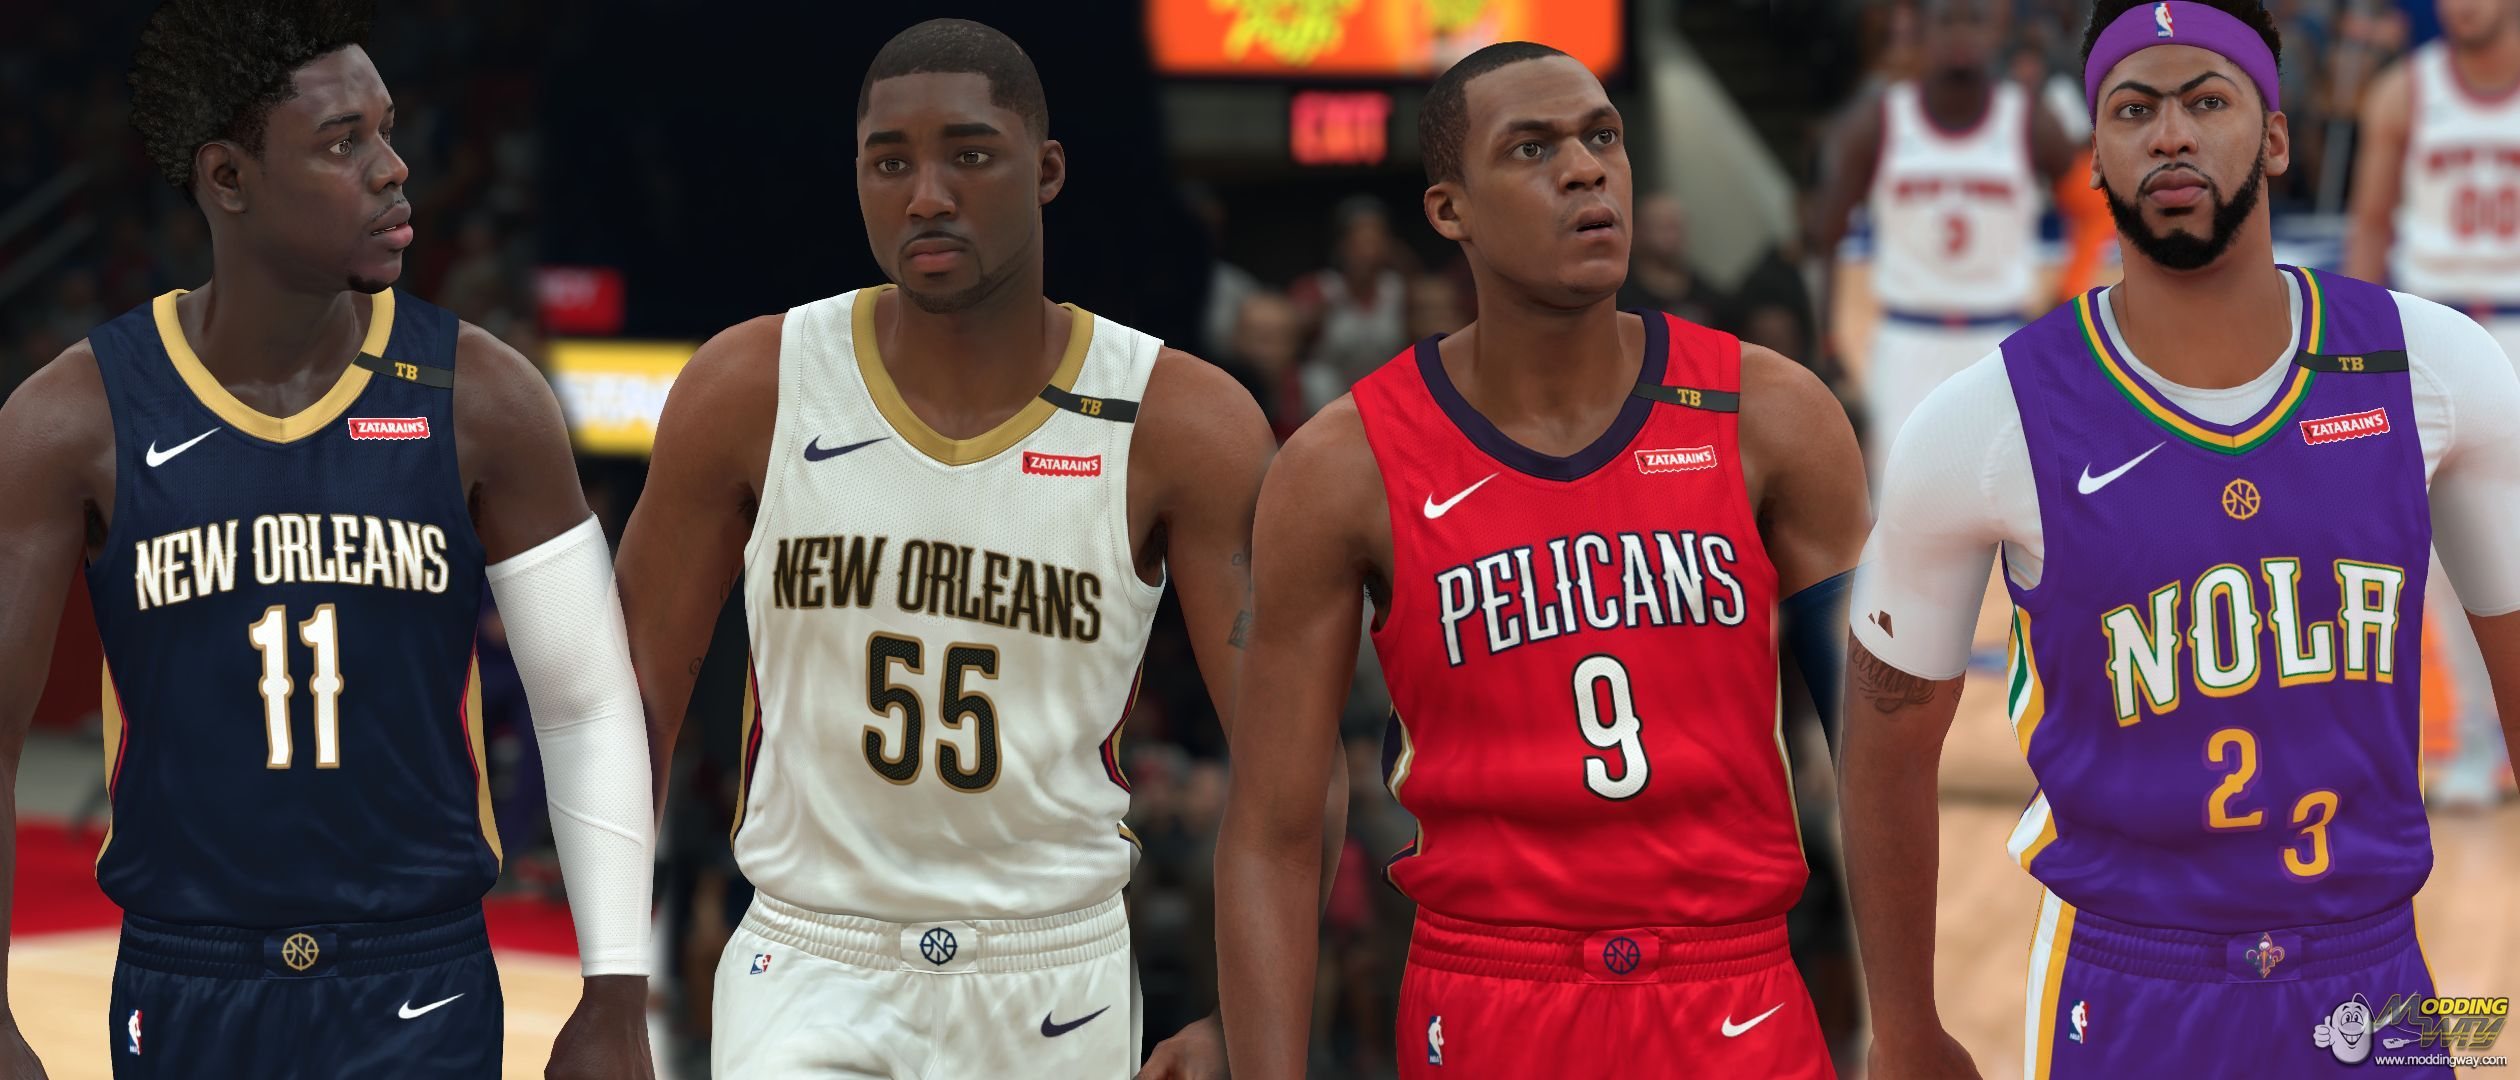 35102603f New Orleans Pelicans jersey with TB patch - NBA 2K18 at ModdingWay